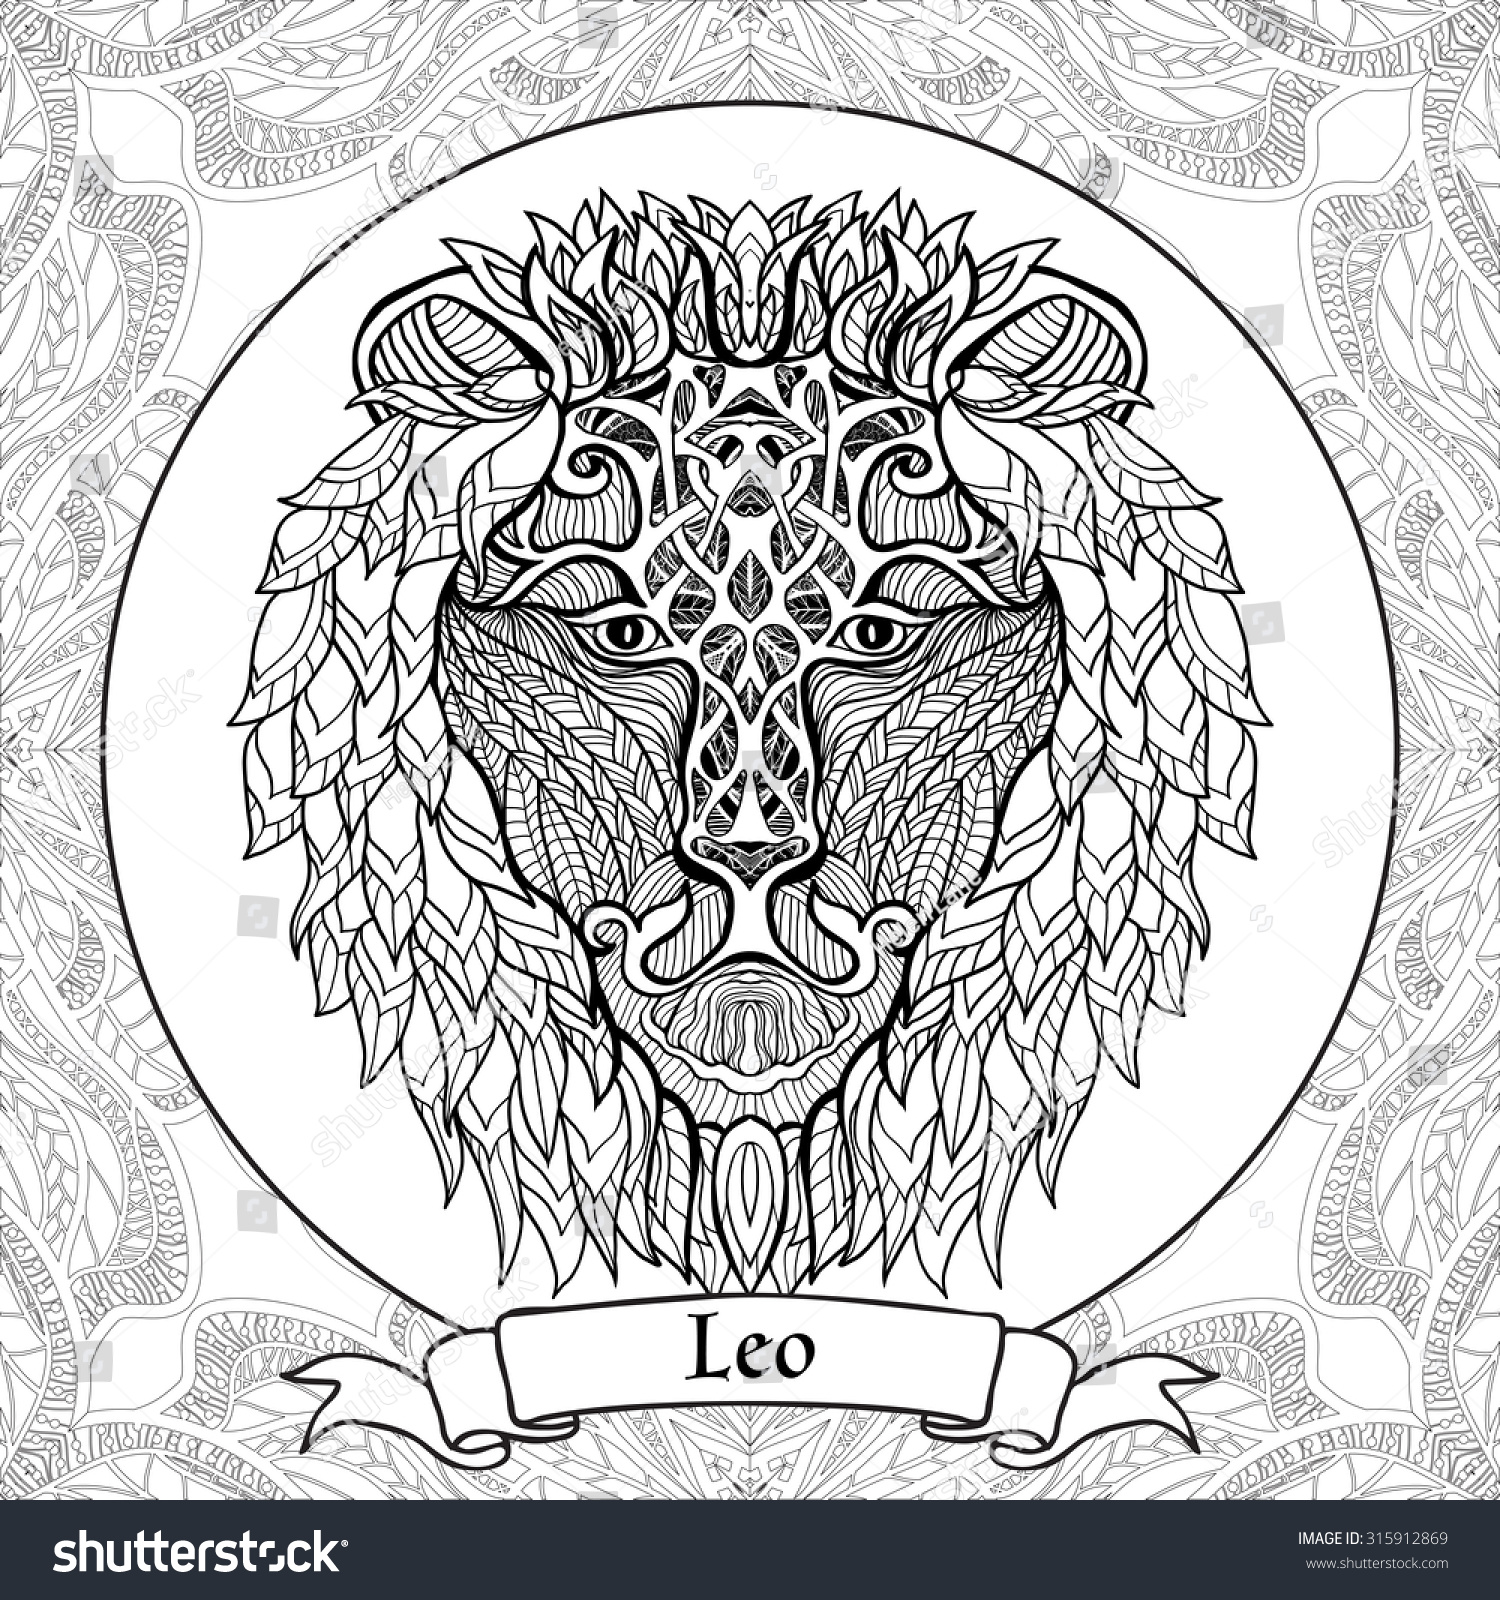 Coloring page with pattern and zodiac sign leo in for Leo coloring pages